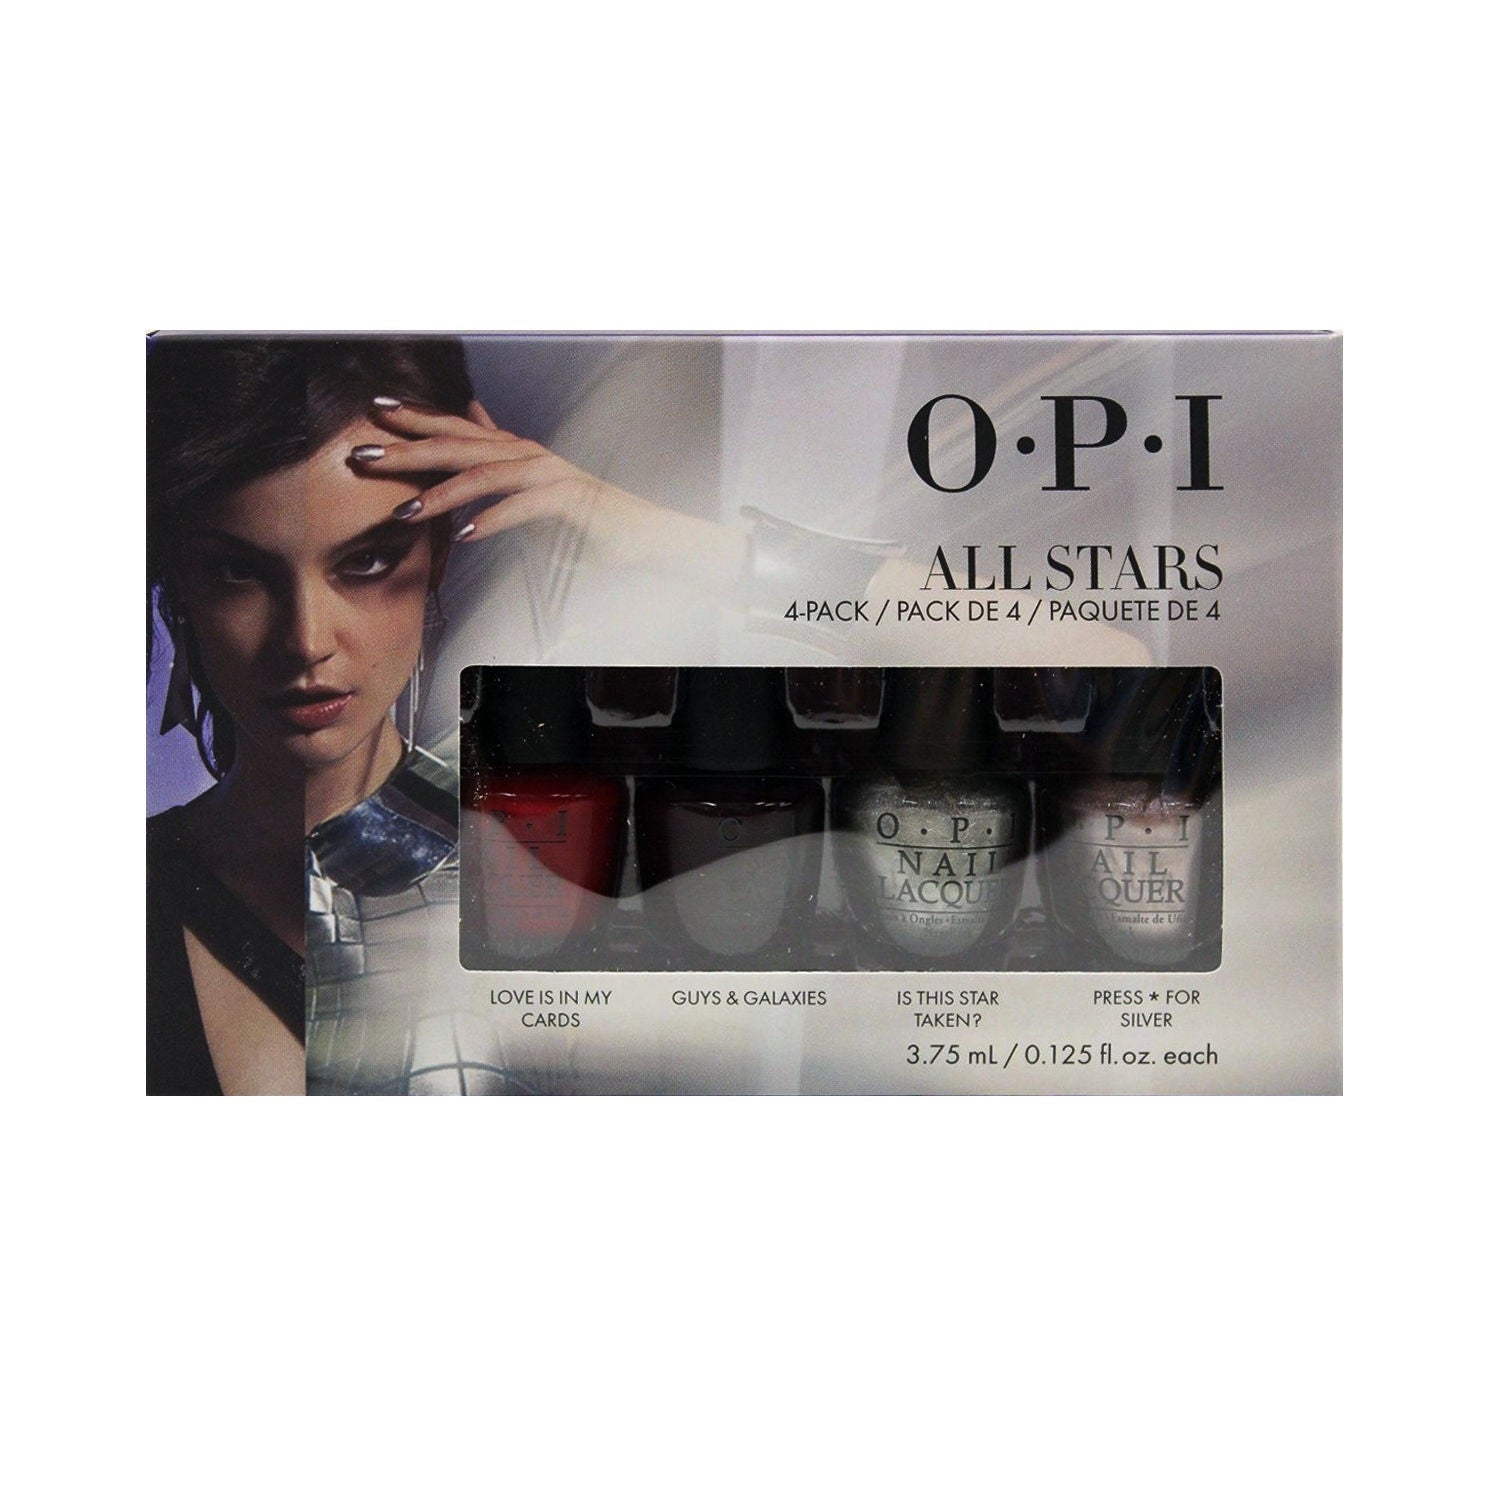 OPI 4-pack Mini All Stars (4 Pack), Grey